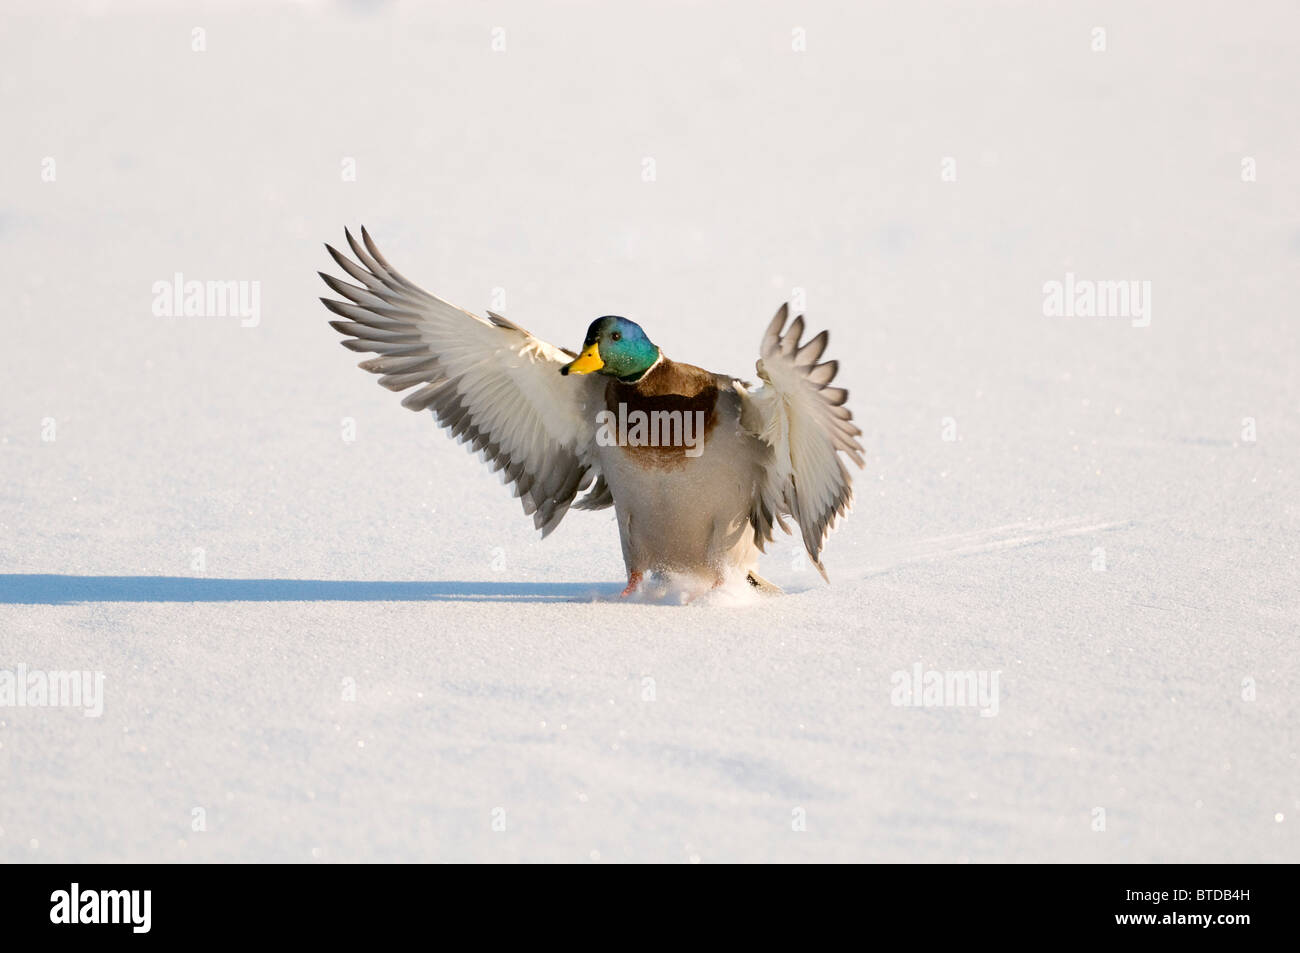 Mallard drake with wings extended lands in snow near Chena River, Fairbanks, Interior Alaska, Winter, Digitally Stock Photo